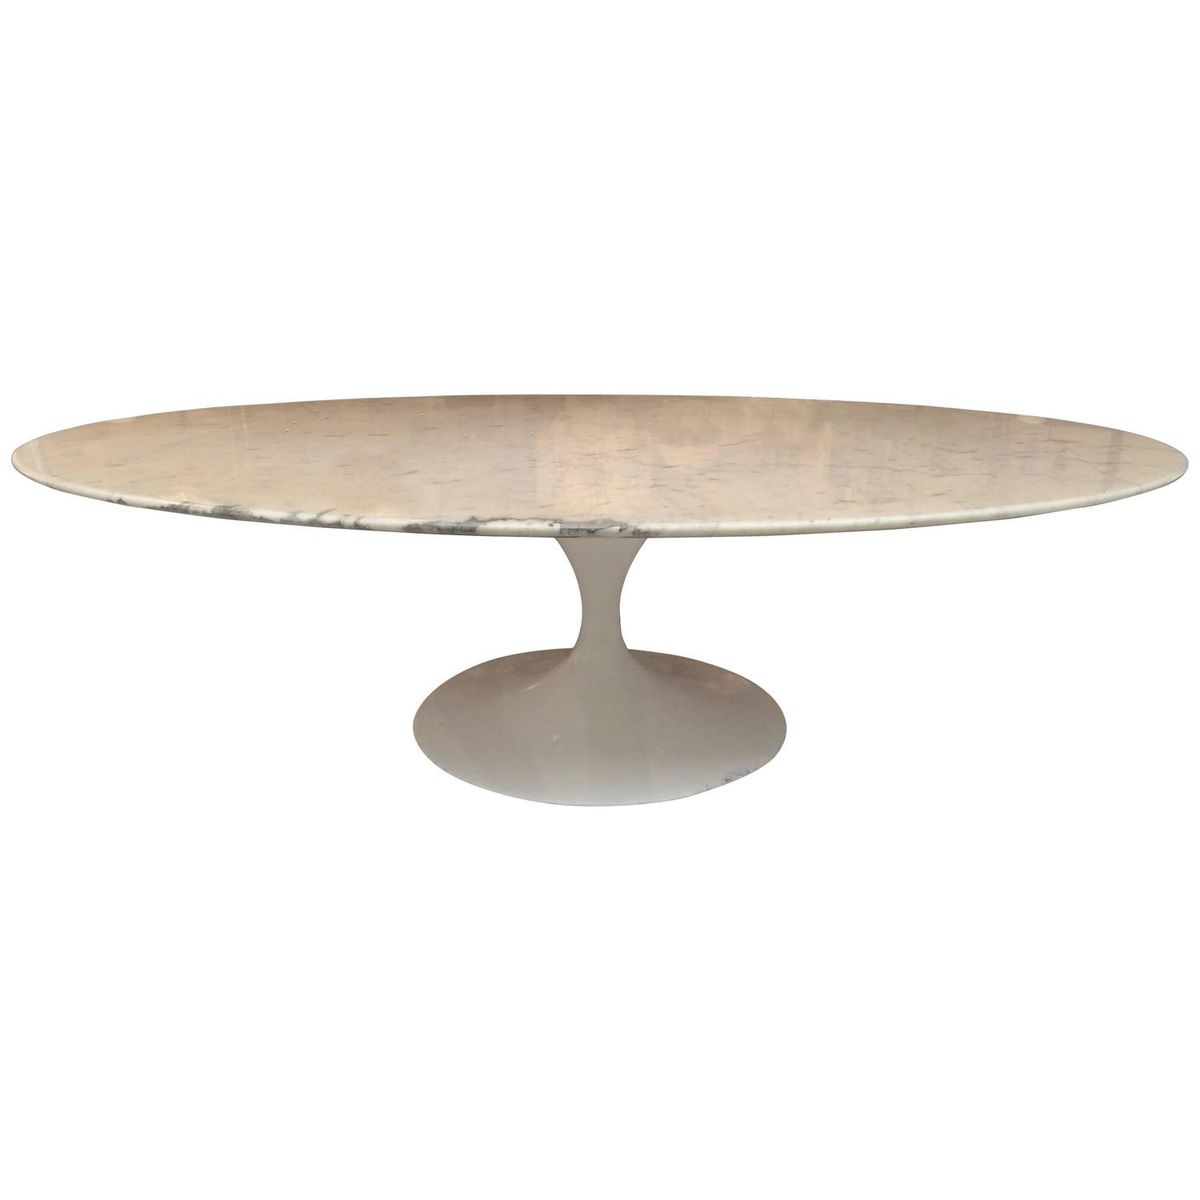 White marble tulip coffee table by eero saarinen for knoll White marble coffee table